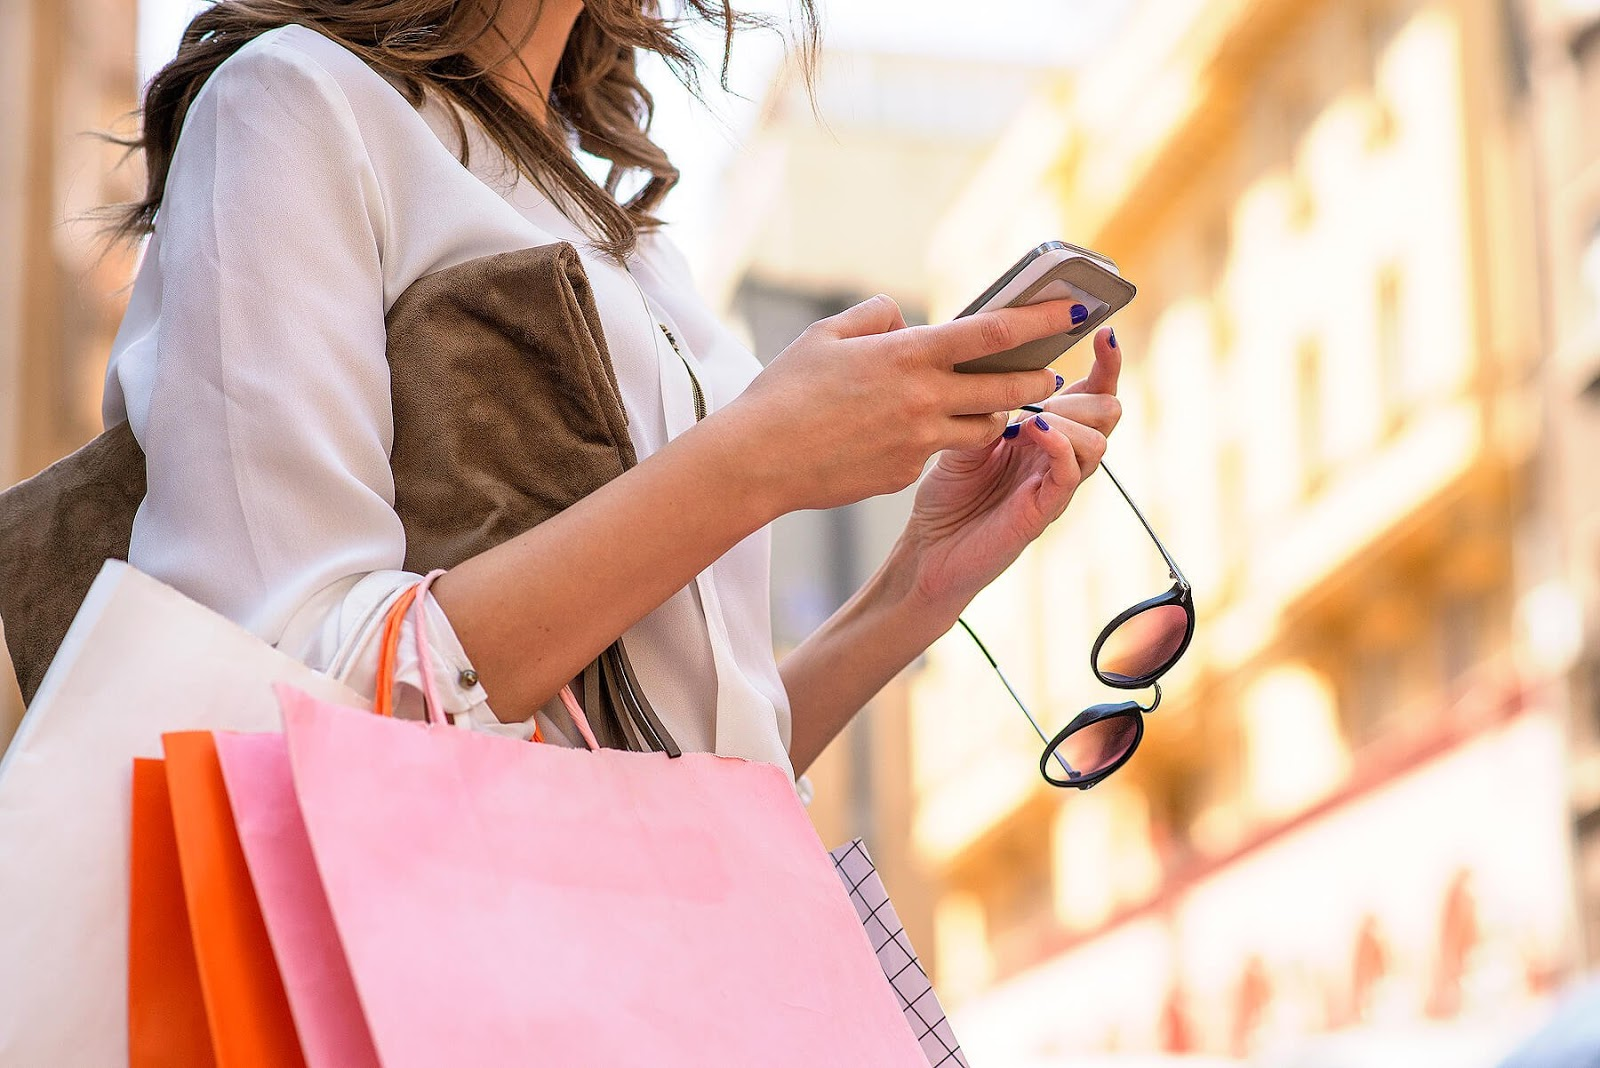 Online shopping: advantages and disadvantages. How to track the package?